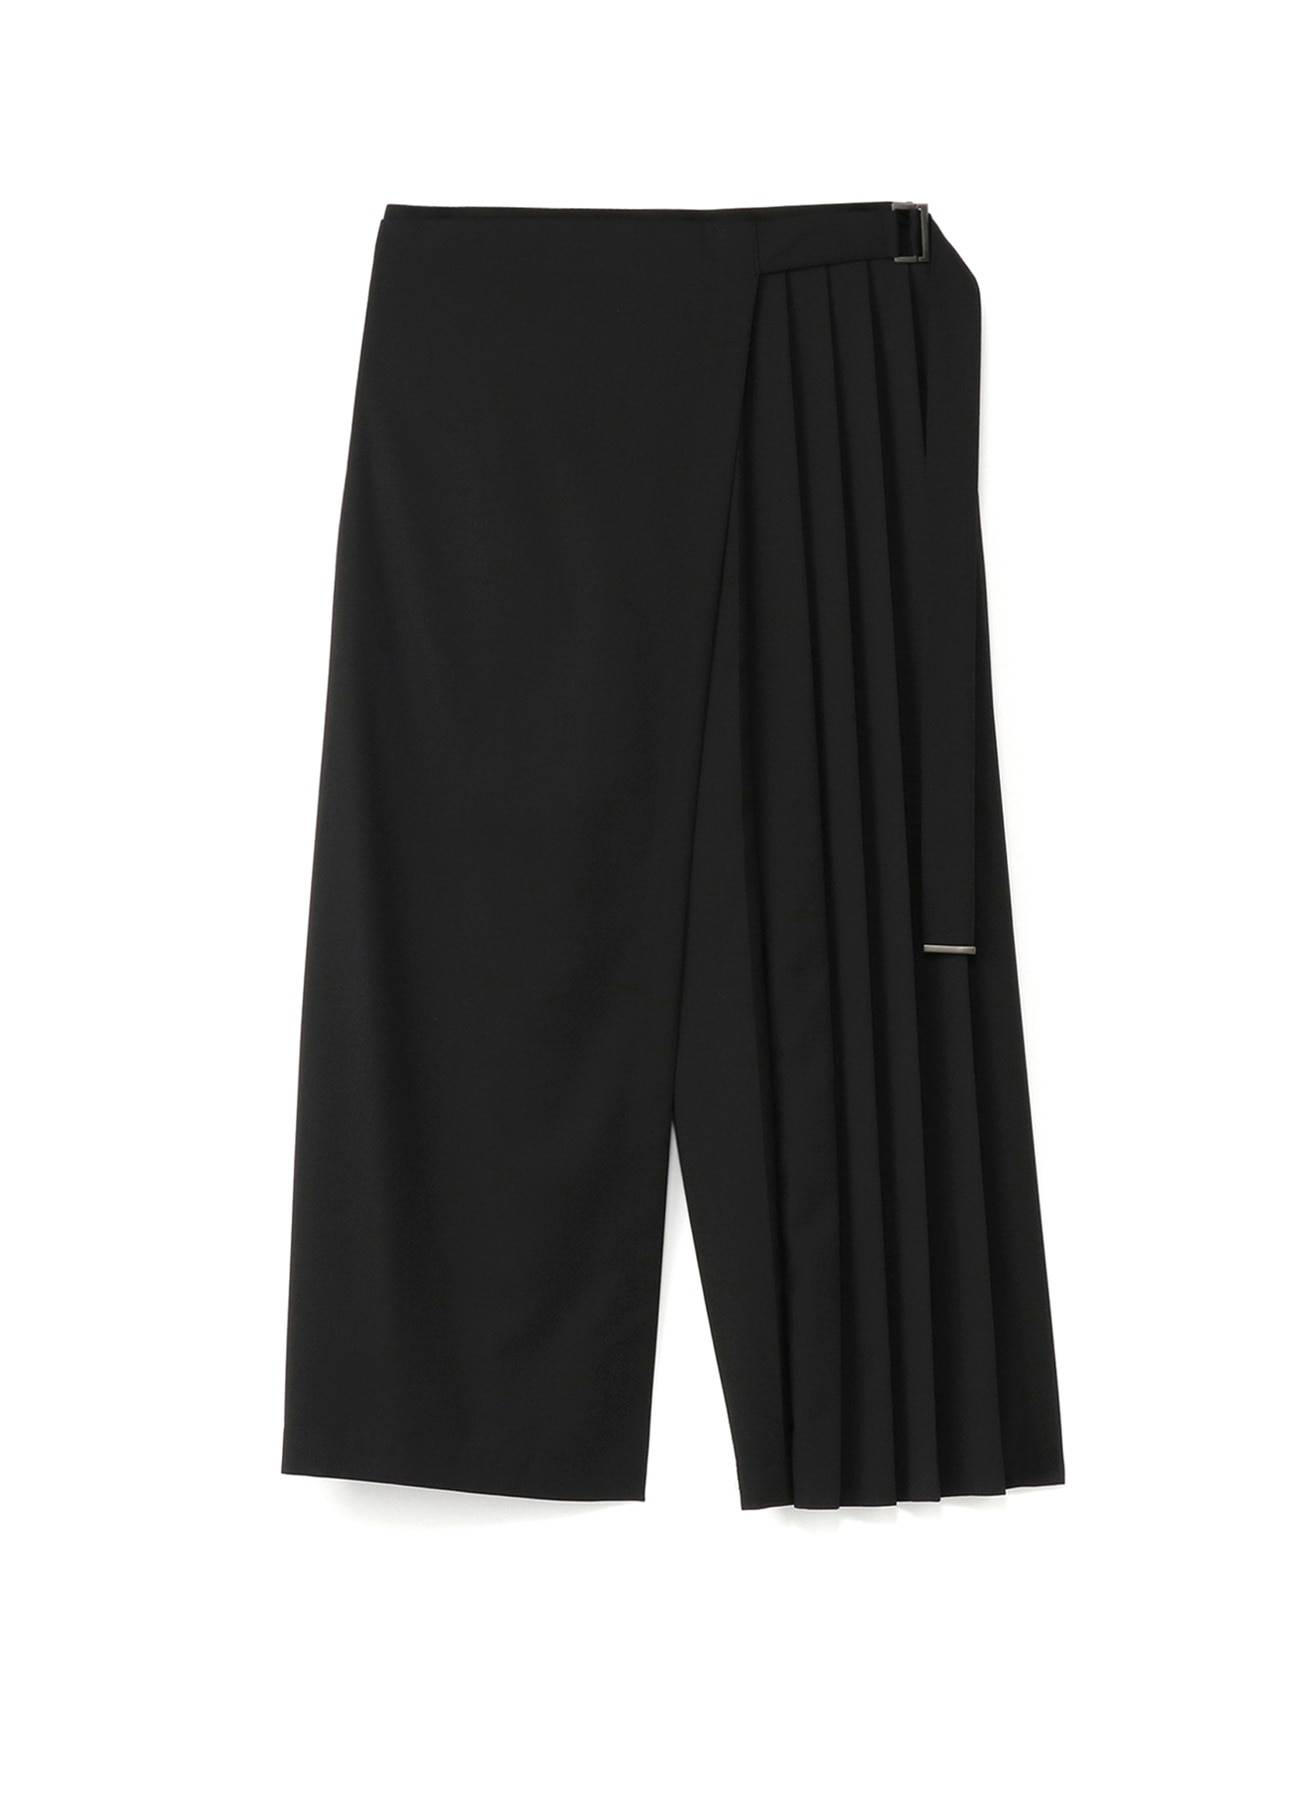 RISMATbyY's Polyester Rayon Clear Twill Pleated Medium Pants​ ​